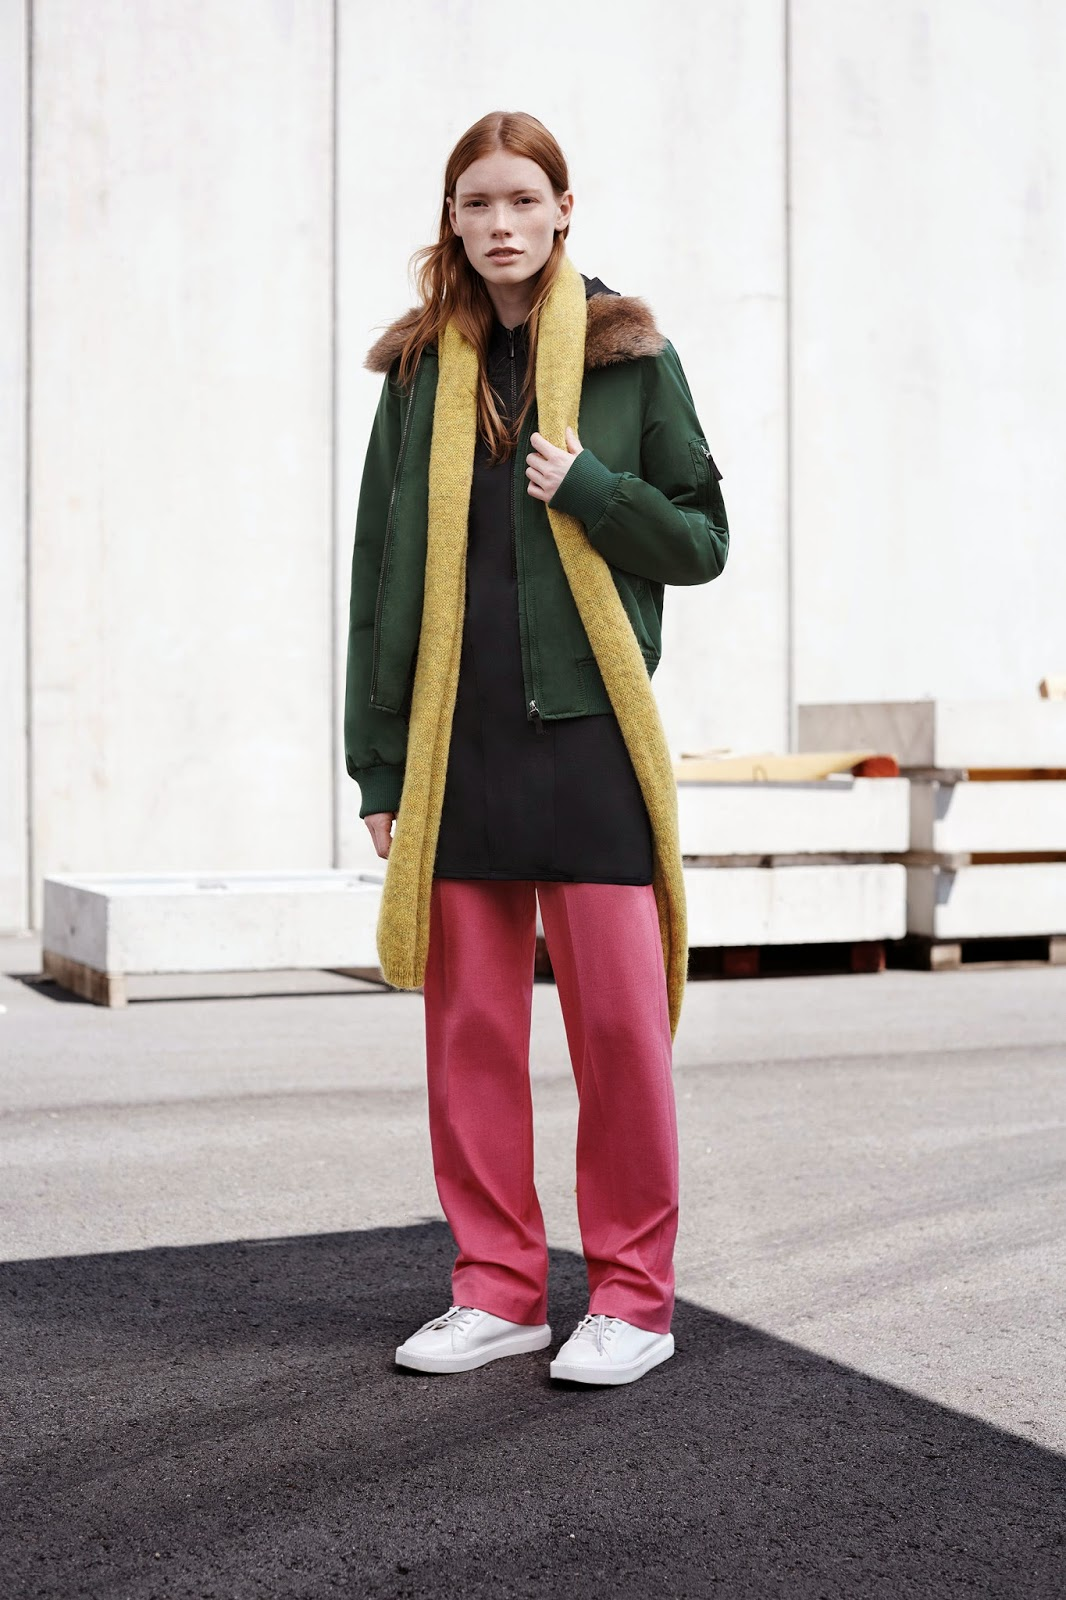 Tendencias AW14/15, Lookbook Trafa, Zara, Normcore, Style, Street Style, Fashion Styles, Cool, Códigos de estilo en la calle, Skirt, Dress, Pants, Boots, Shopping Bag, Shoes, Blucher,